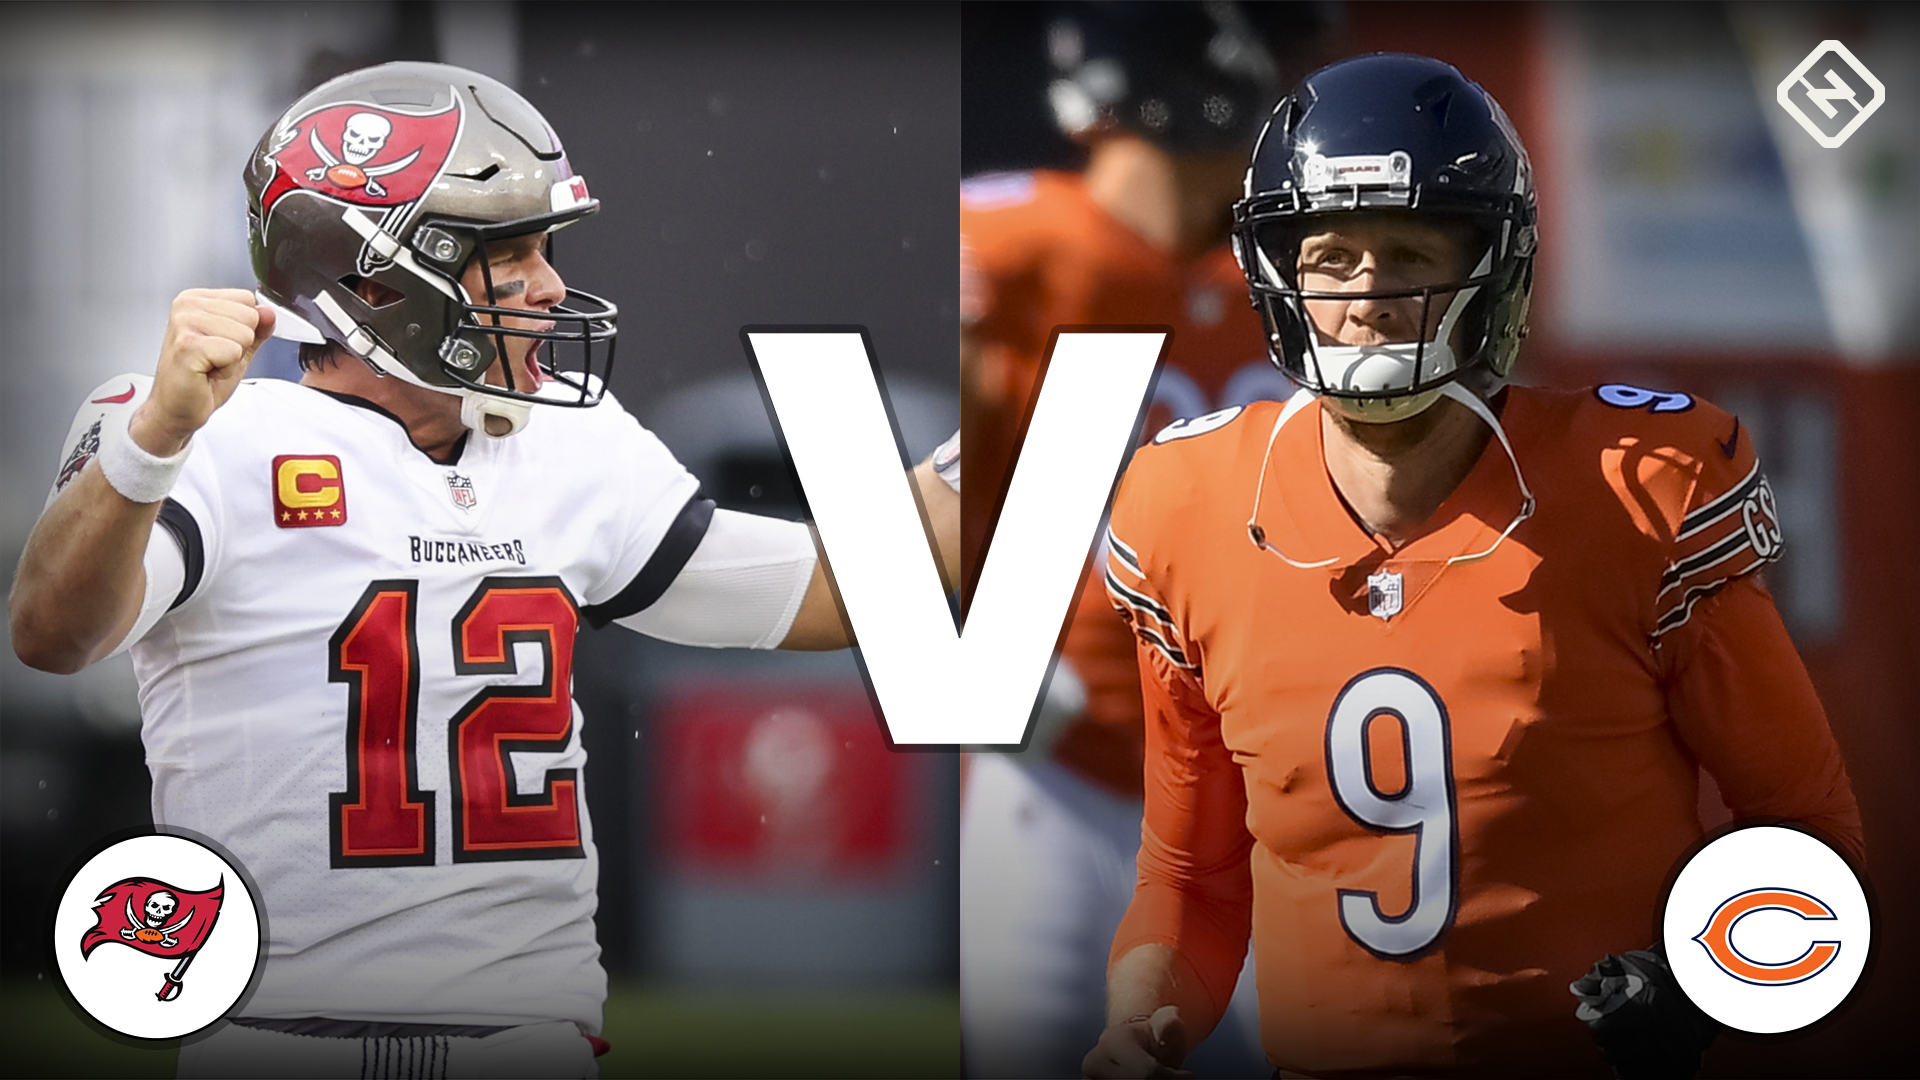 Buccaneers vs. Bears live score, updates, highlights from NFL's 'Thursday Night Football' game